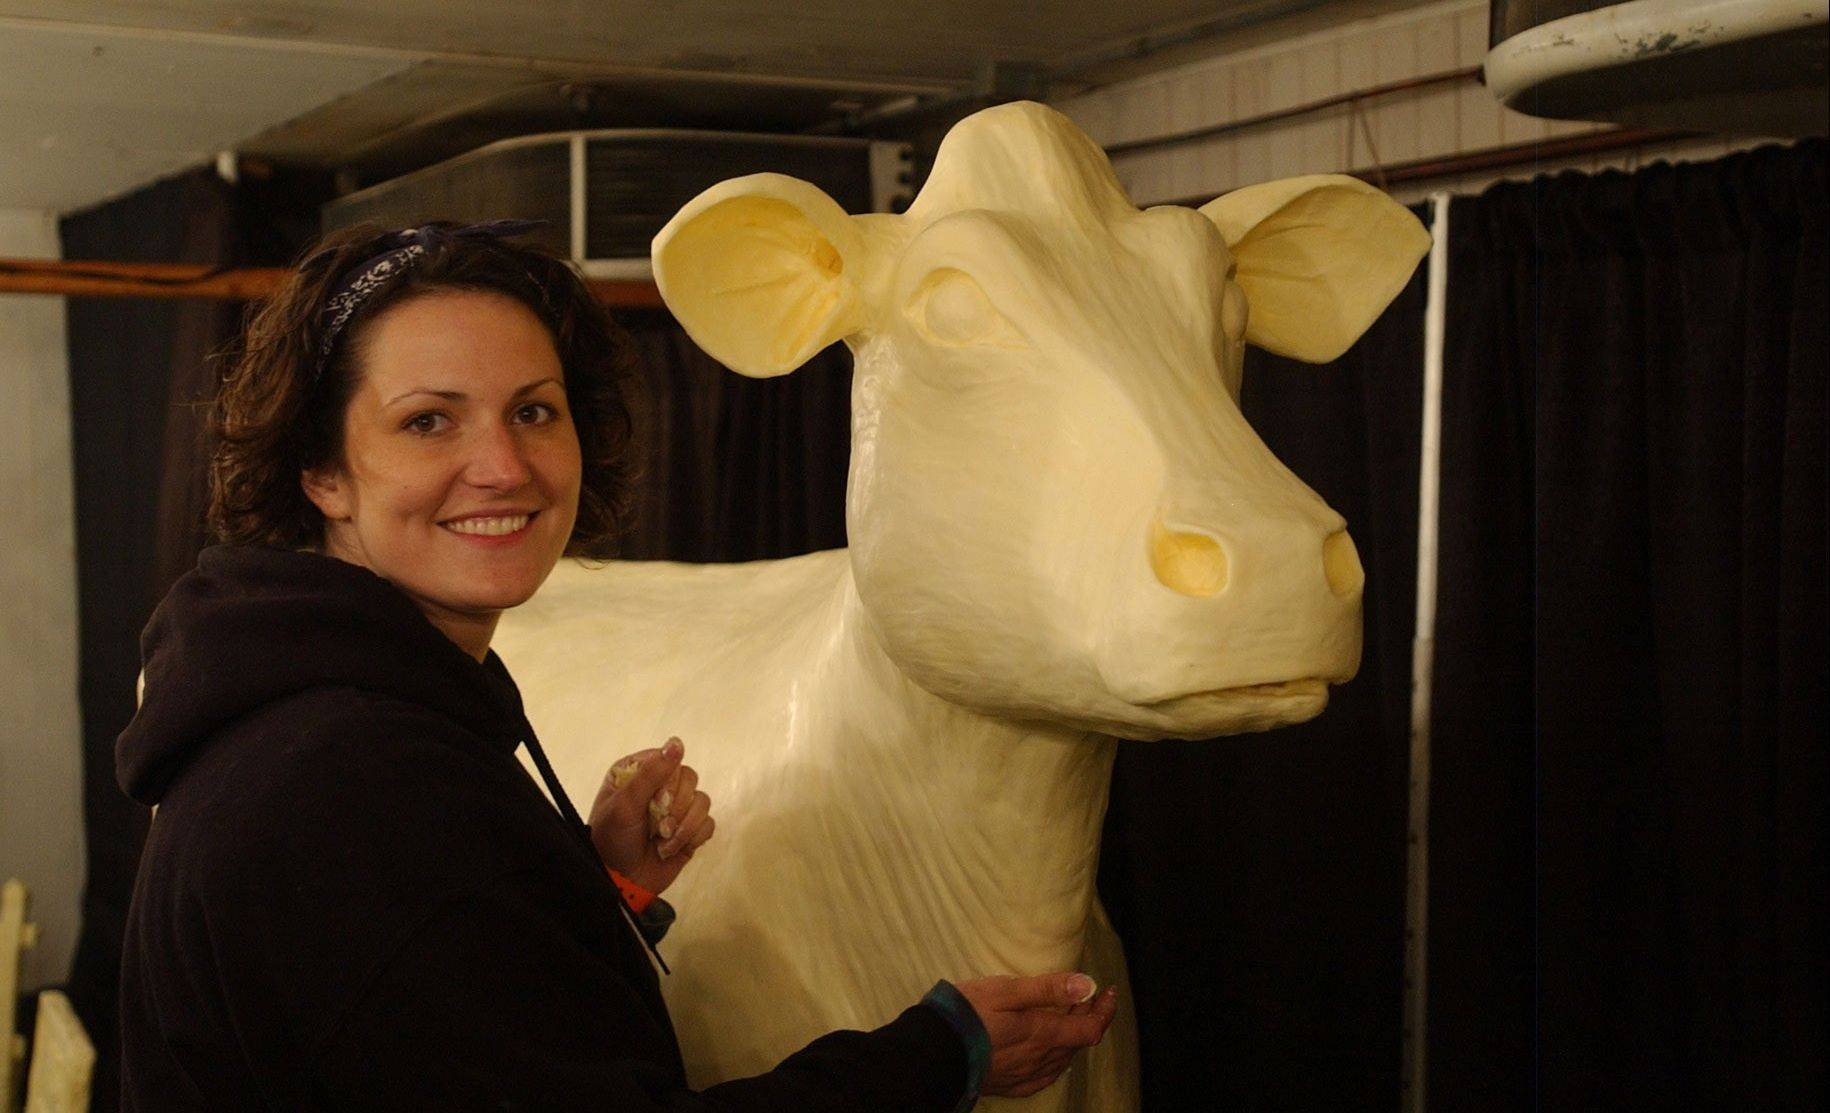 Butter sculptures are just on of the old-fashioned attractions at the Iowa State Fair.